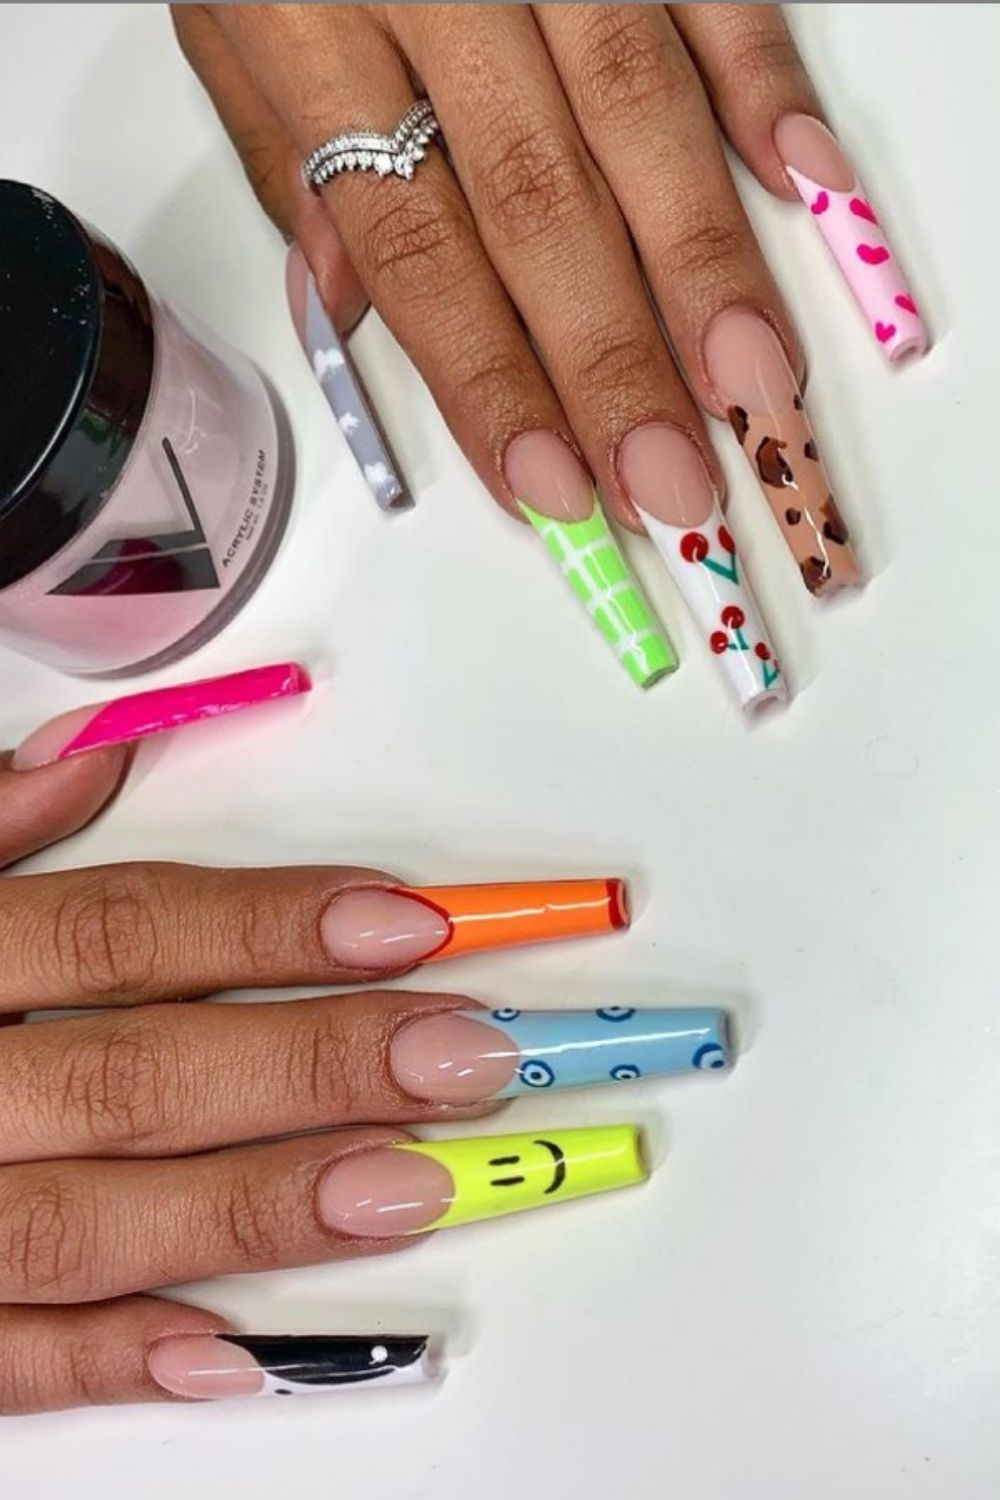 Long acrylic coffin nails designs for summer nails ideas 2021